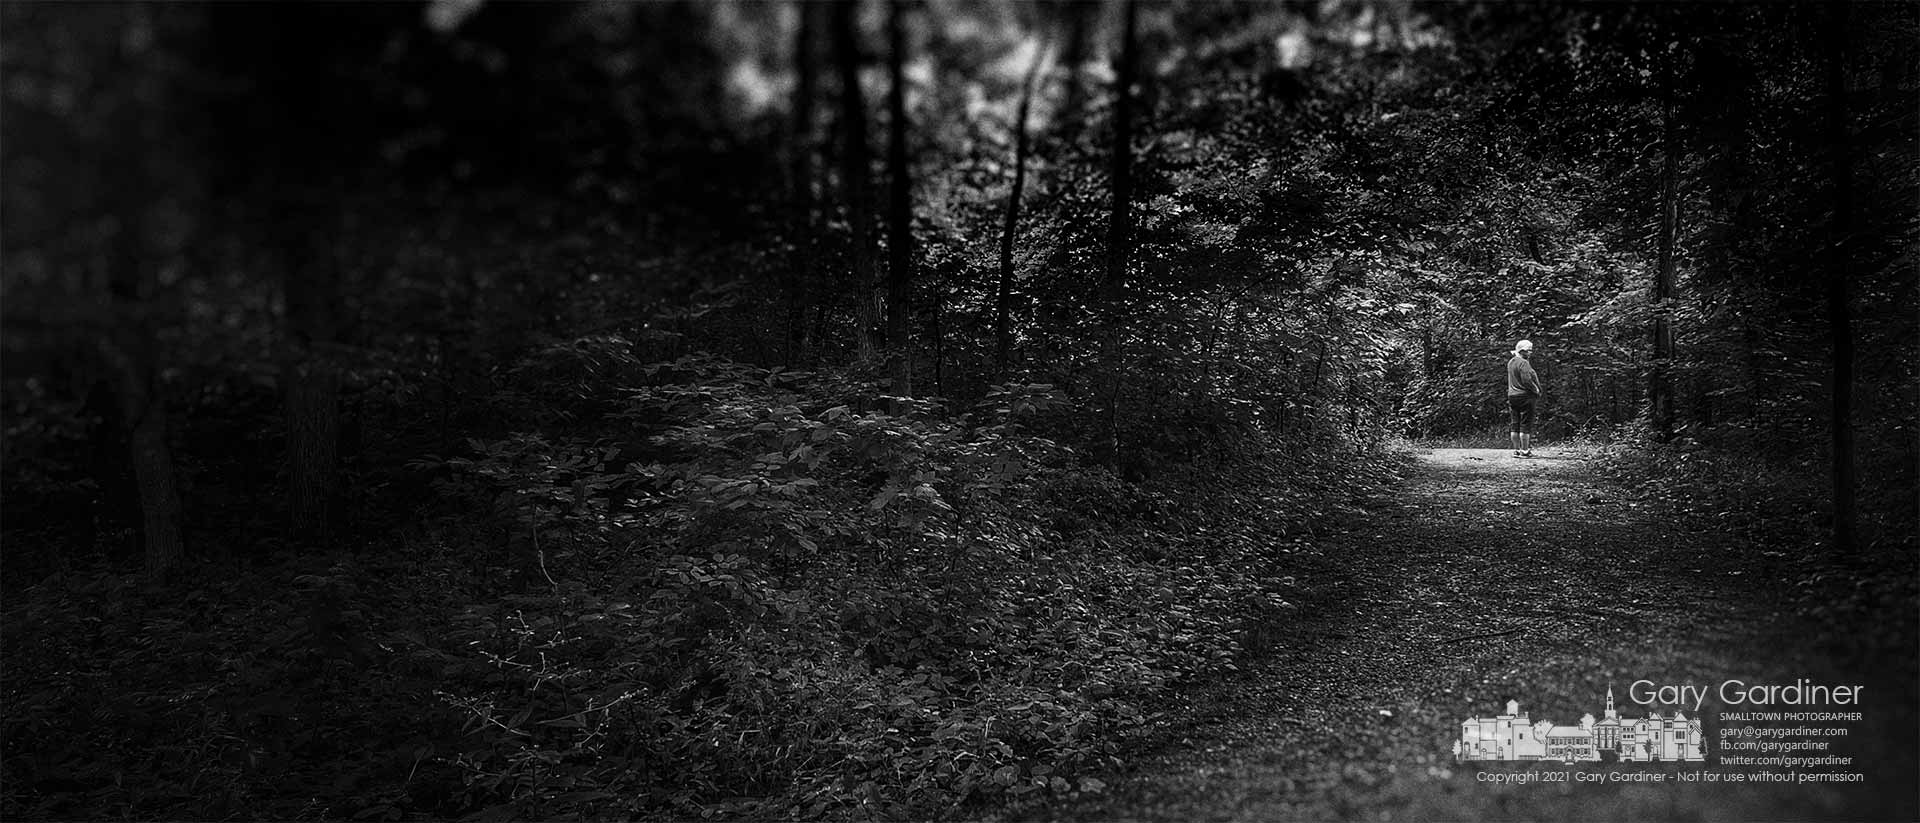 A woman pauses during a walk at Boyer Nature Preserve to wait for her companion to join her along the entrance path. My Final Photo for July 13, 2021.